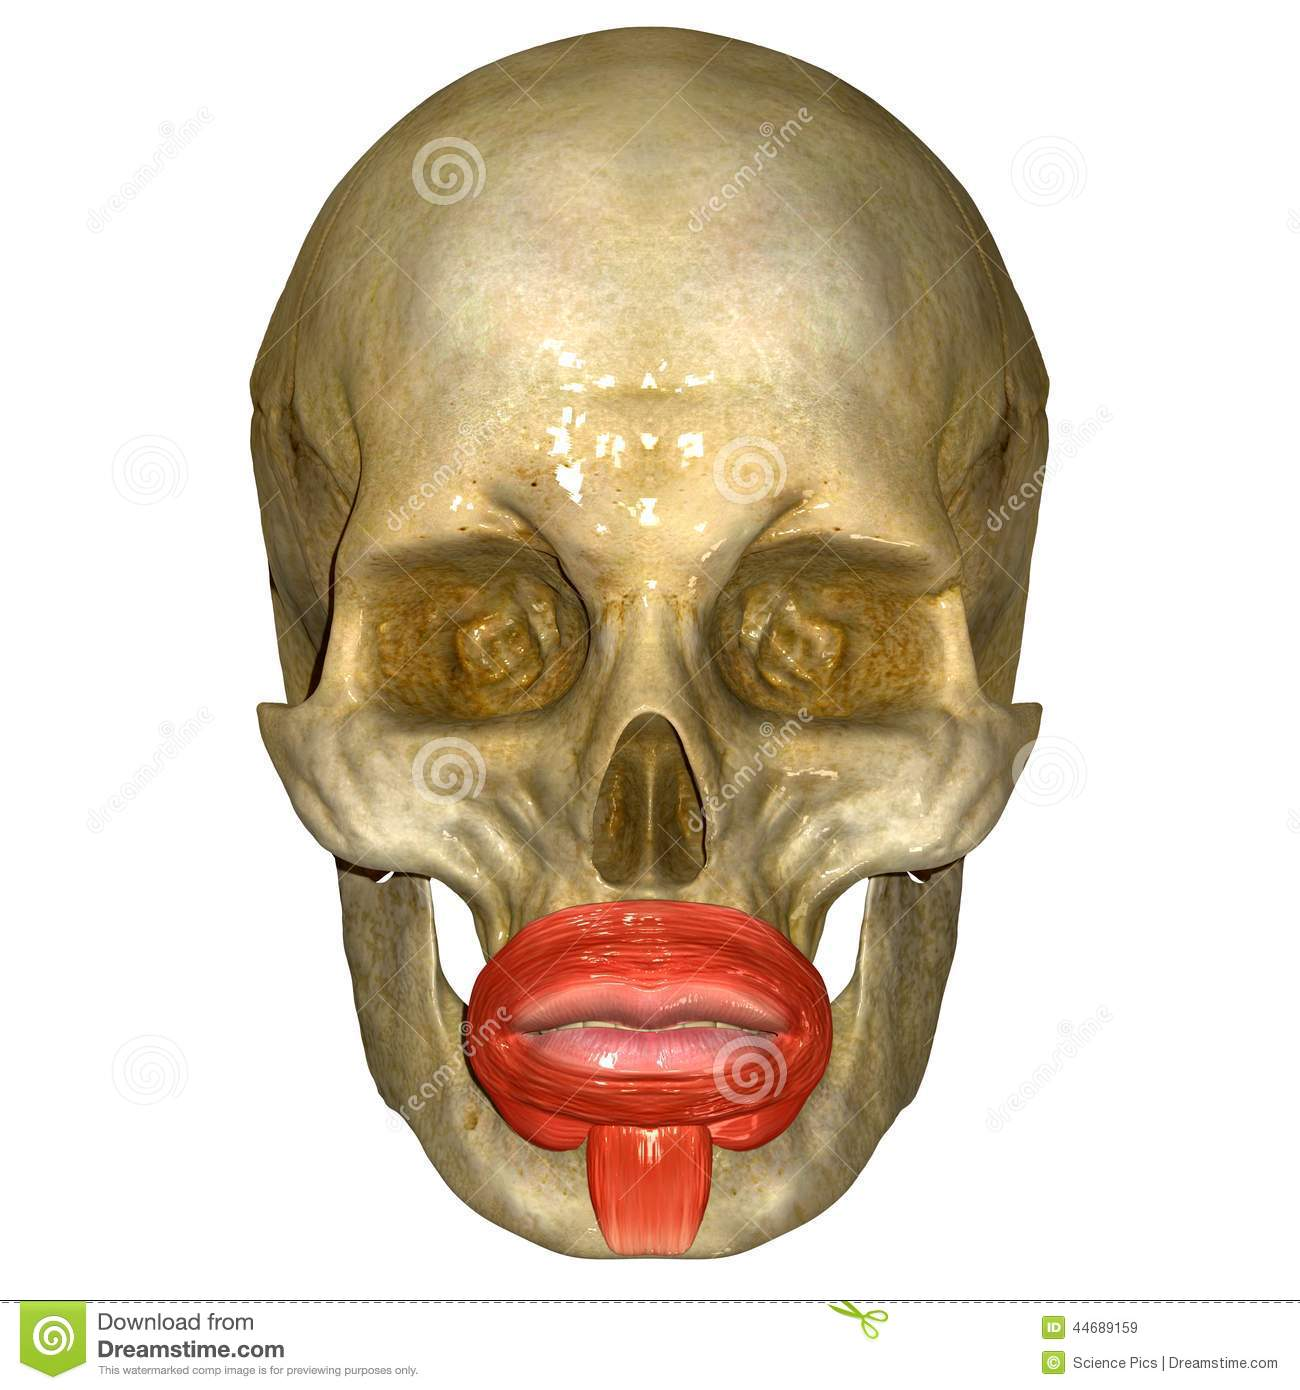 skull with orbicularis oris muscle stock illustration - image, Human body